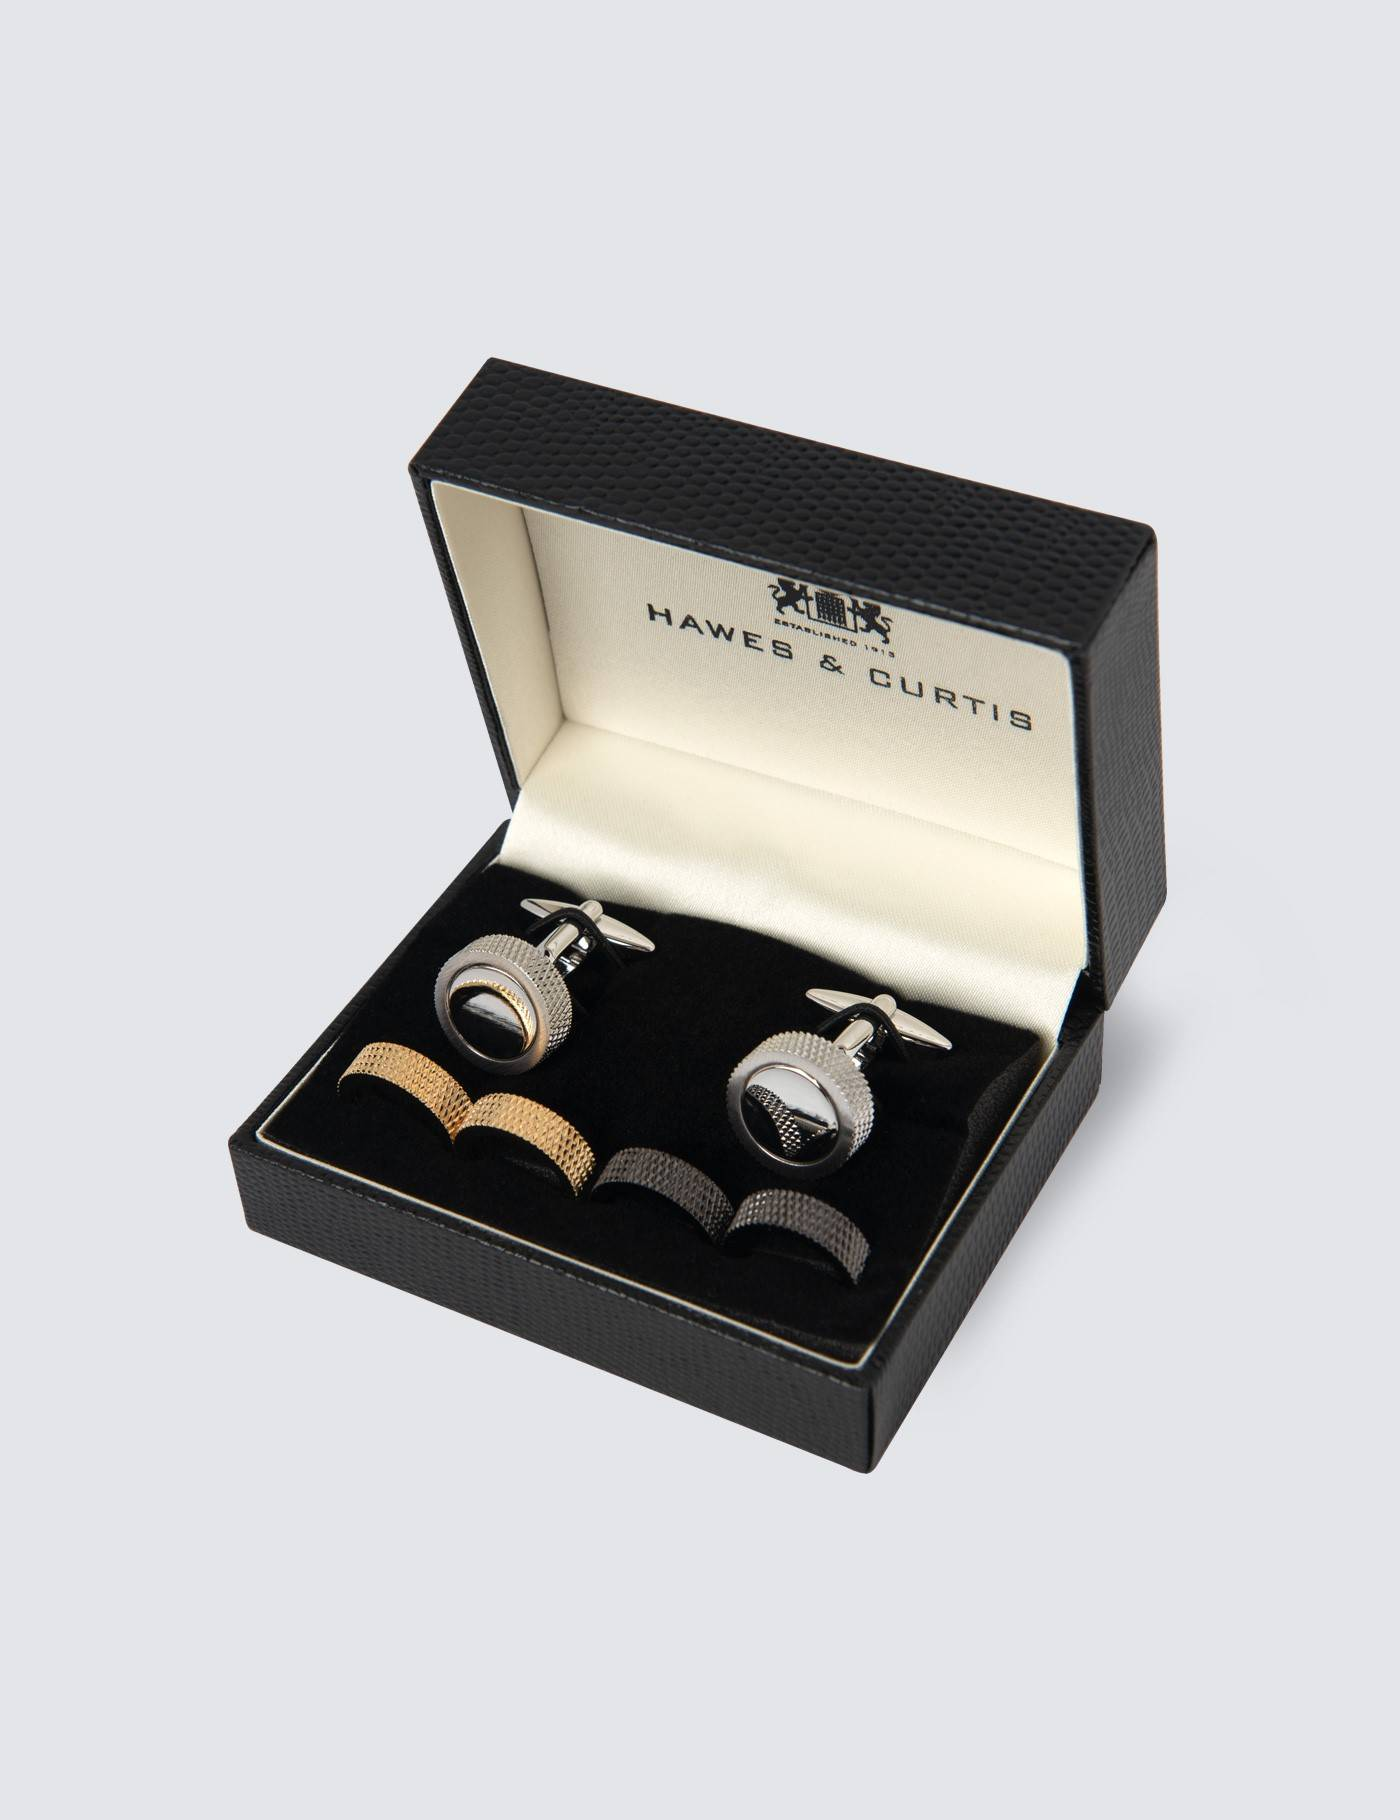 Hawes & Curtis Men's Multi Colour Interchangeable Cufflink Gift Set in Assorted